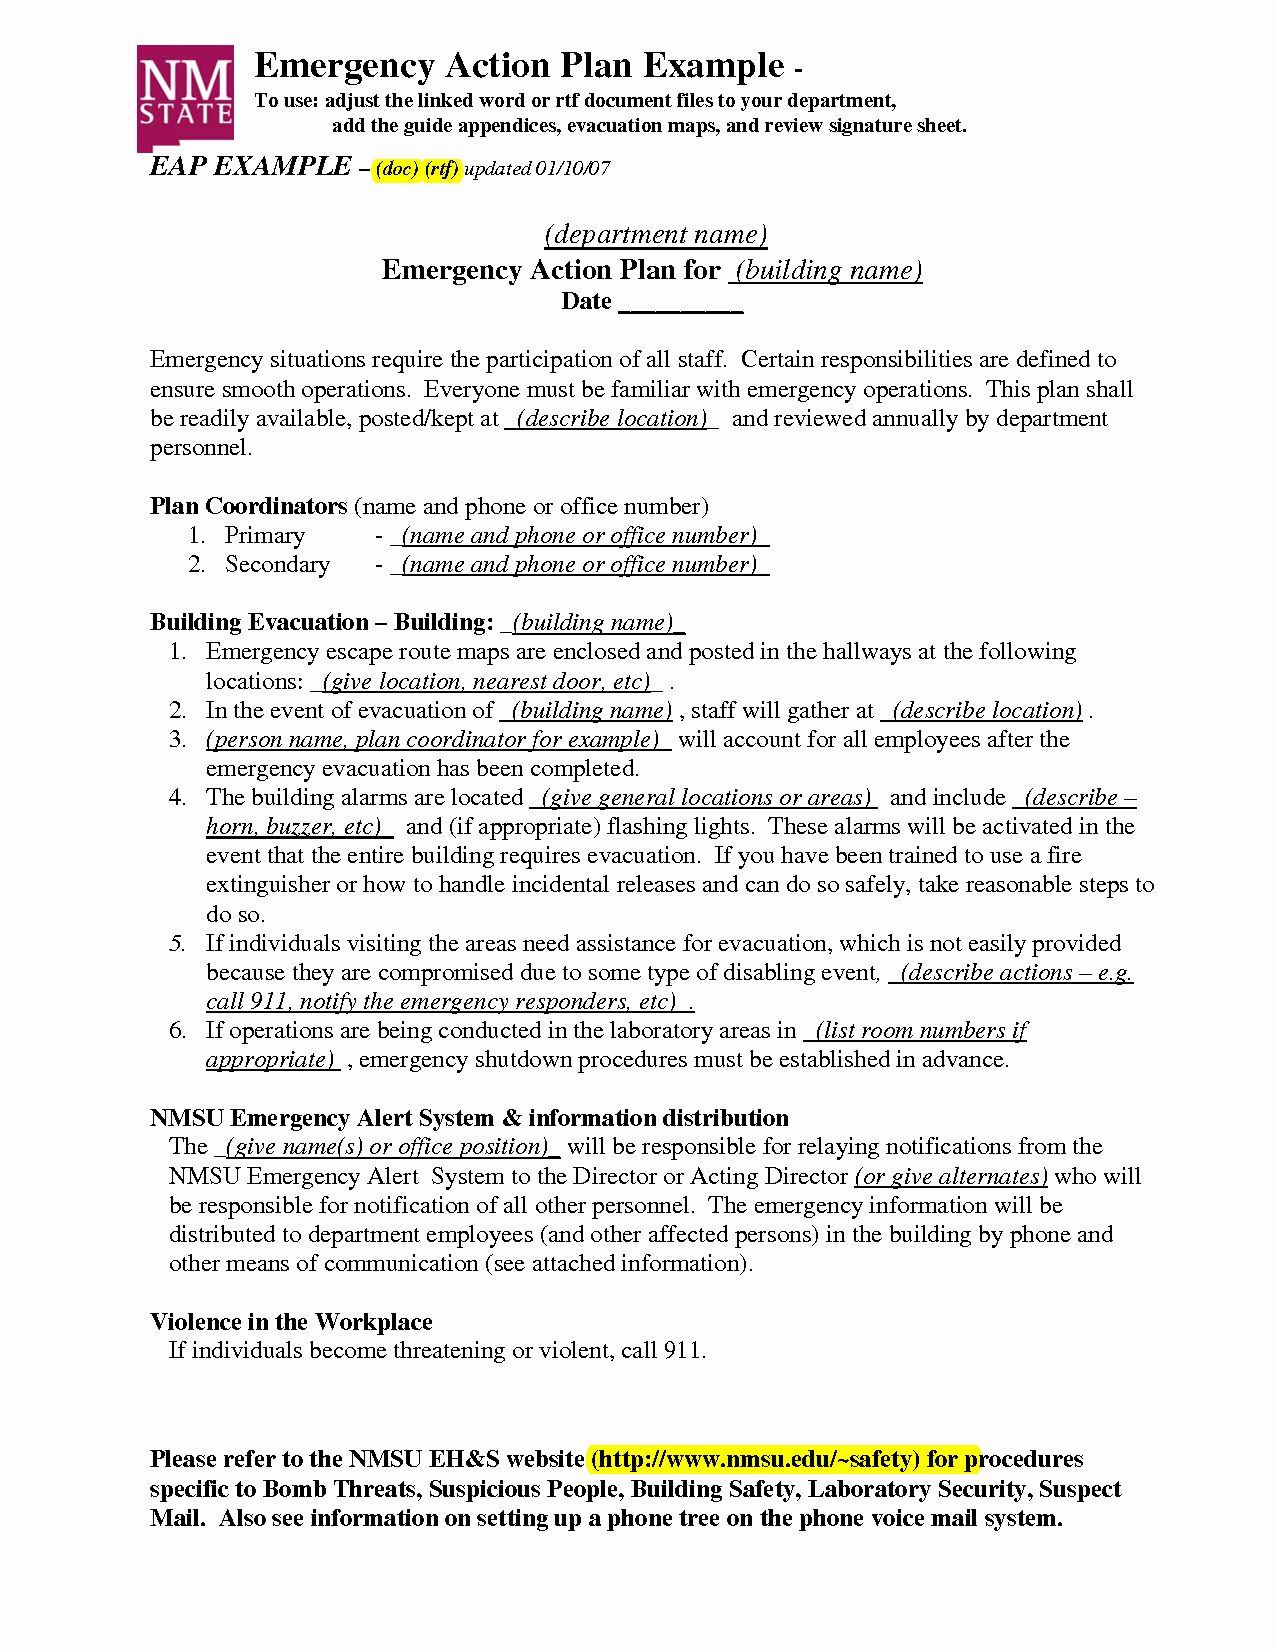 Emergency Action Plan Sample Luxury Emergency Action Plan Template